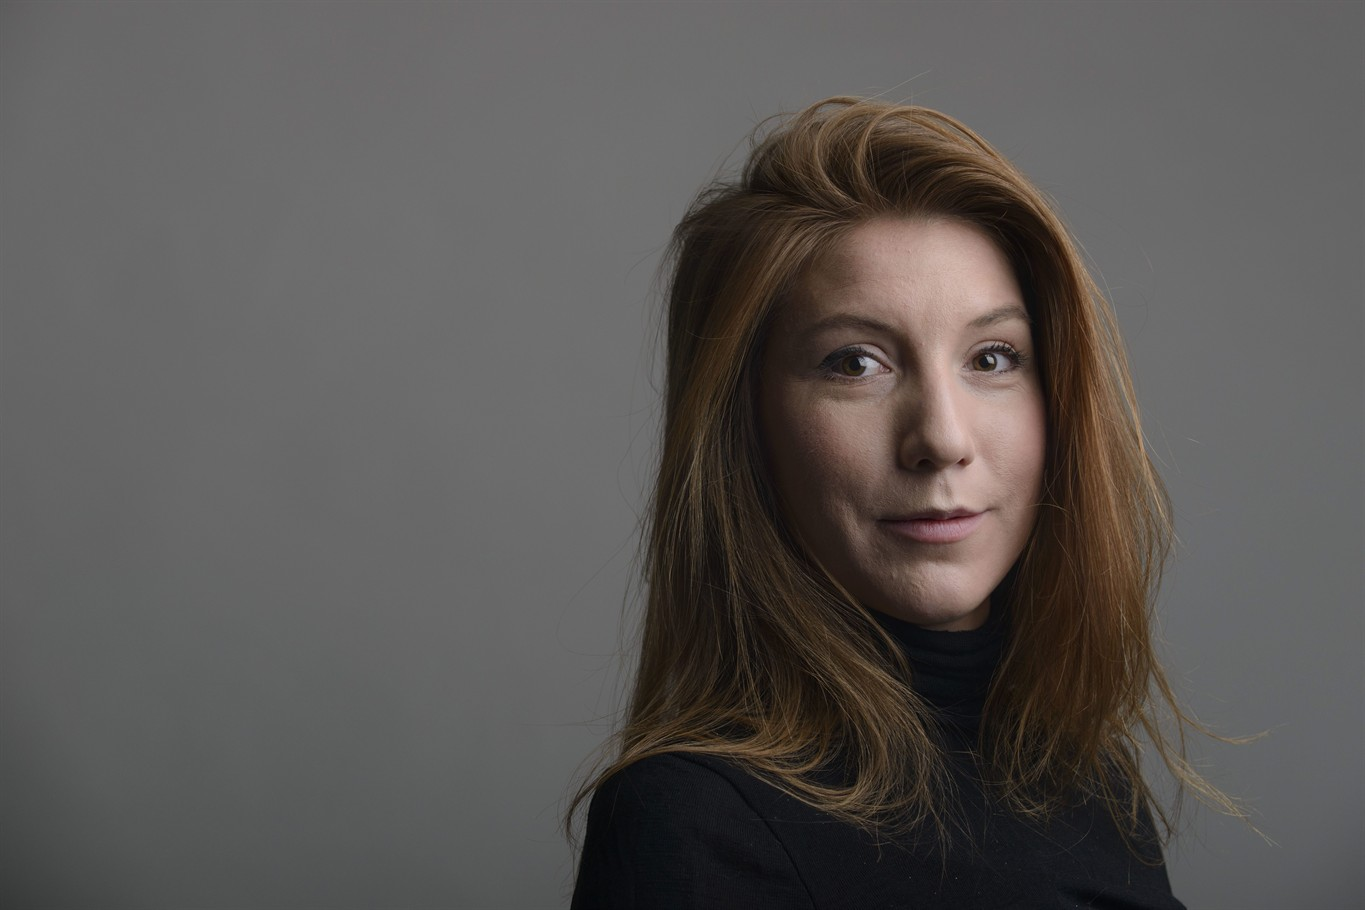 Madsen dumped Kim Wall into bay after she died on his sub